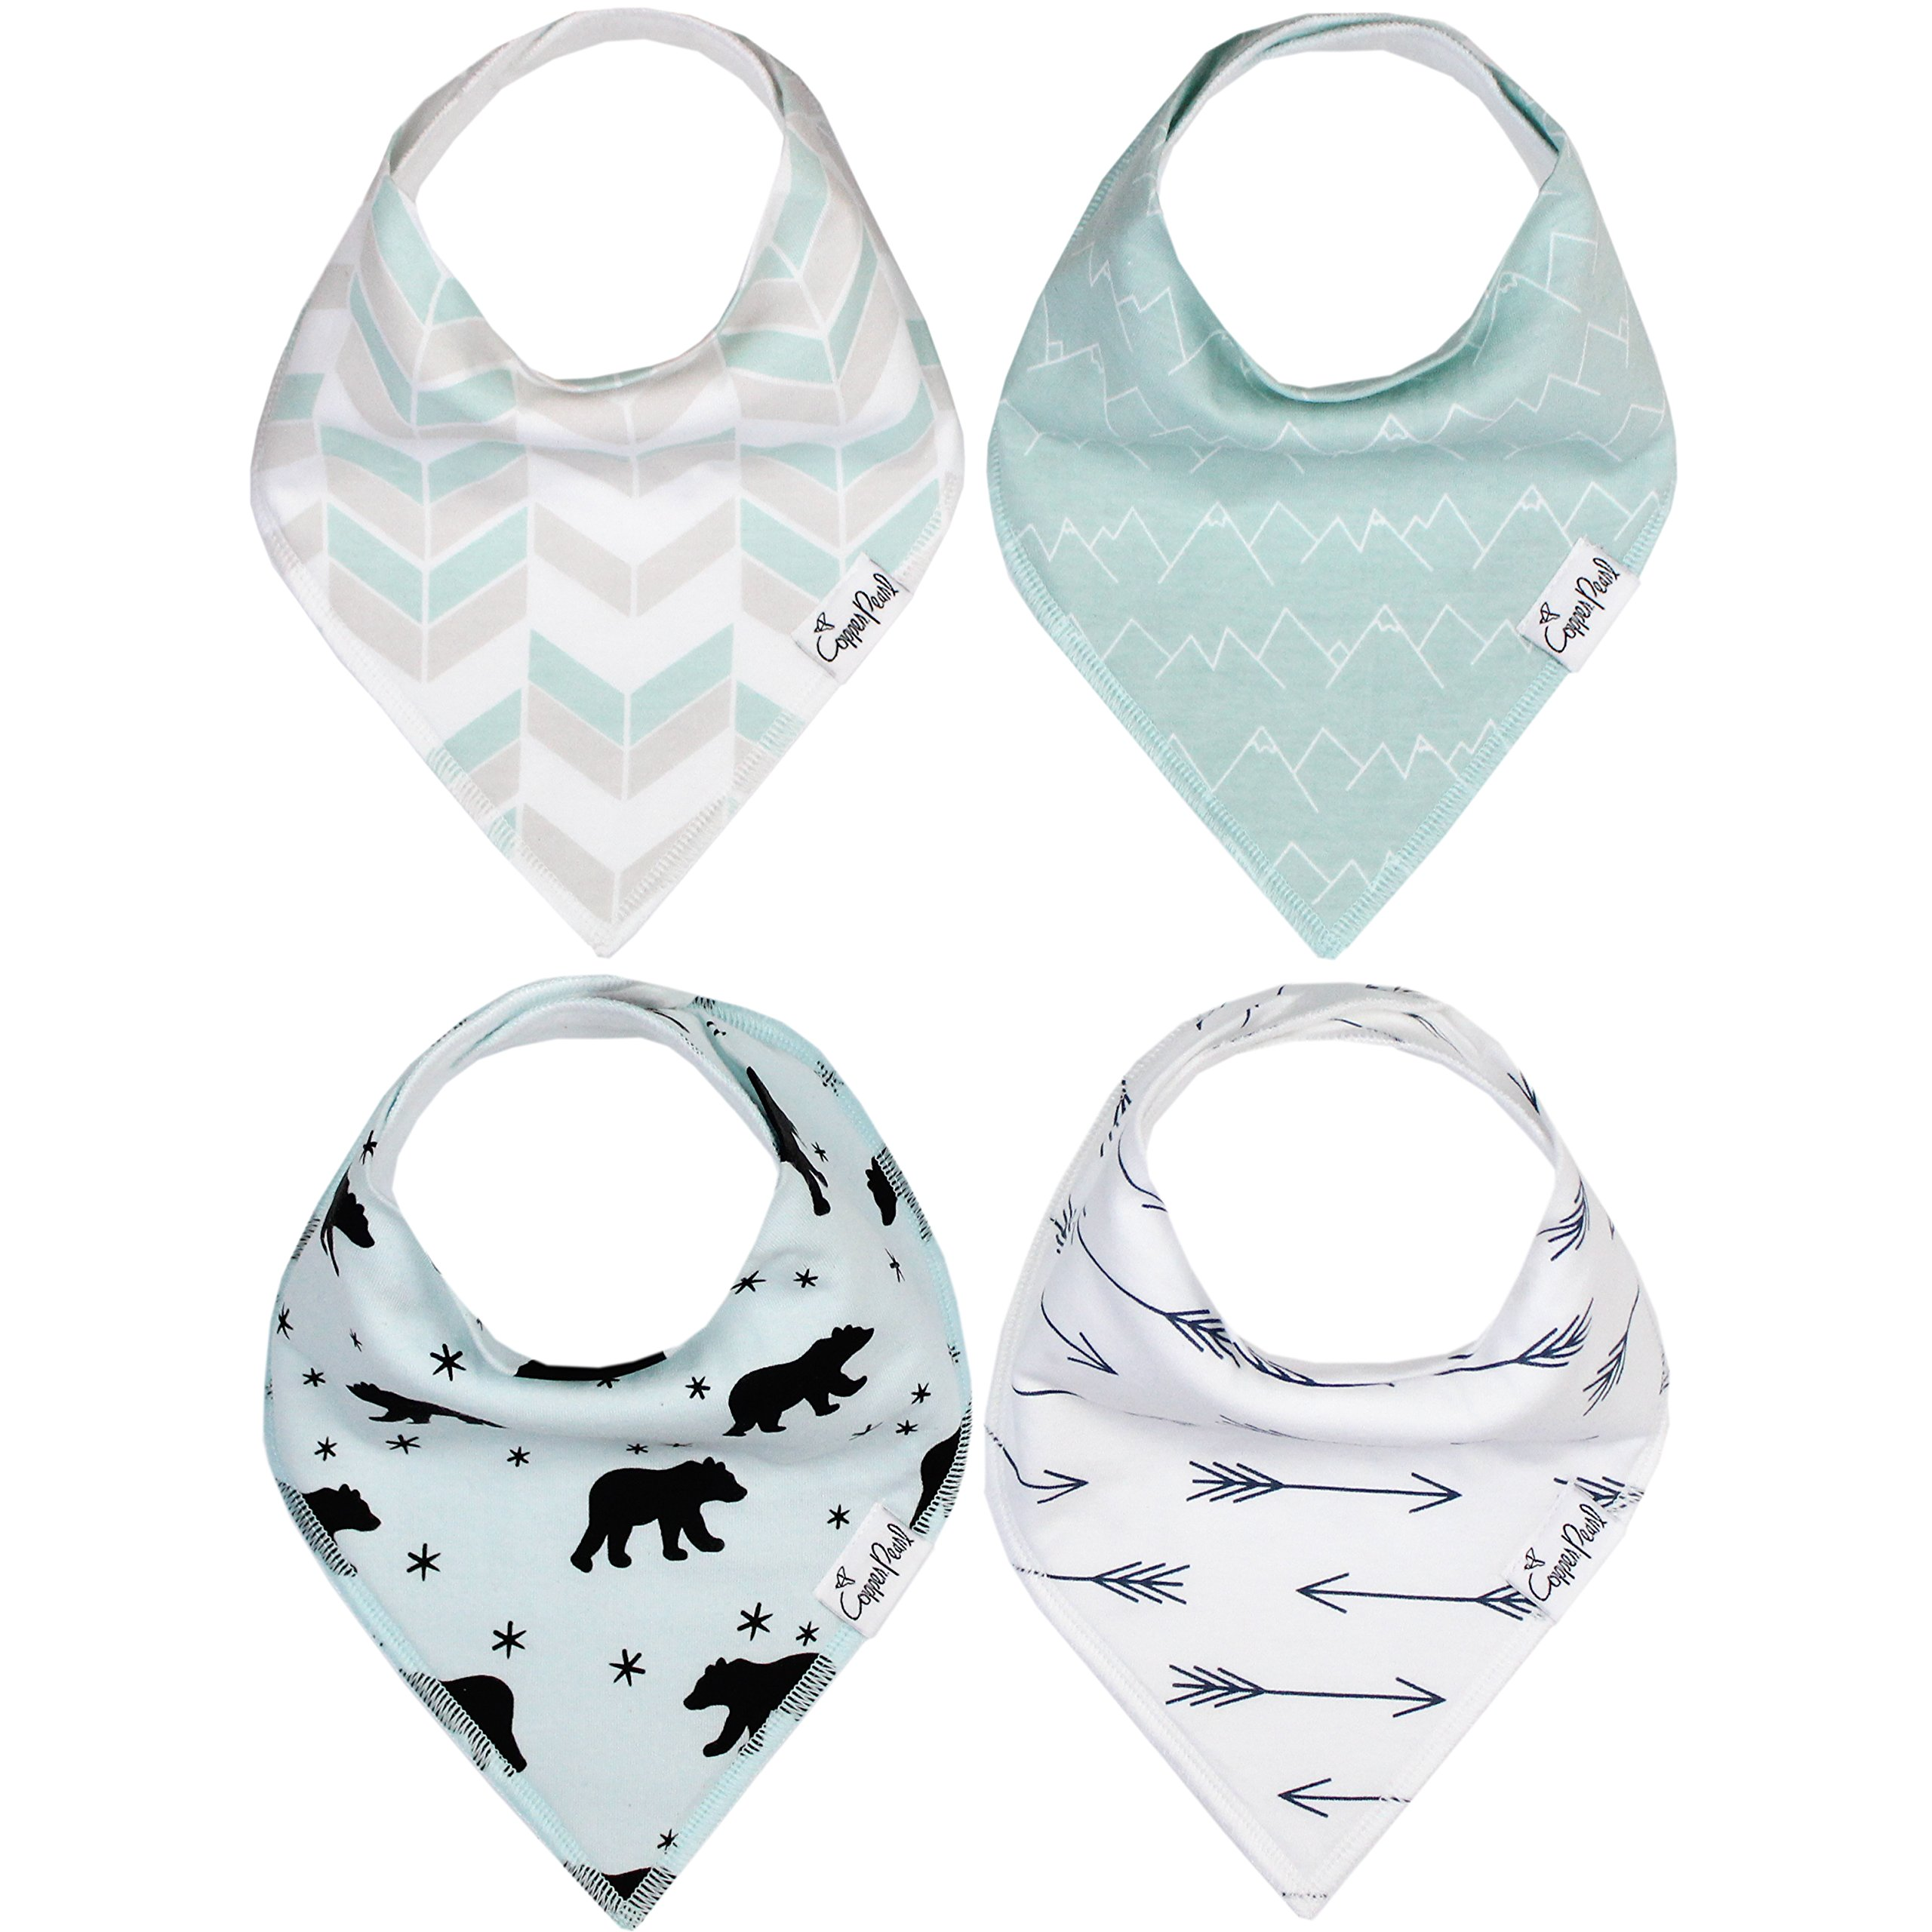 Baby Bandana Drool Bibs 4 Pack Gift Set For Boys ''Archer Set'' by Copper Pearl by Copper Pearl